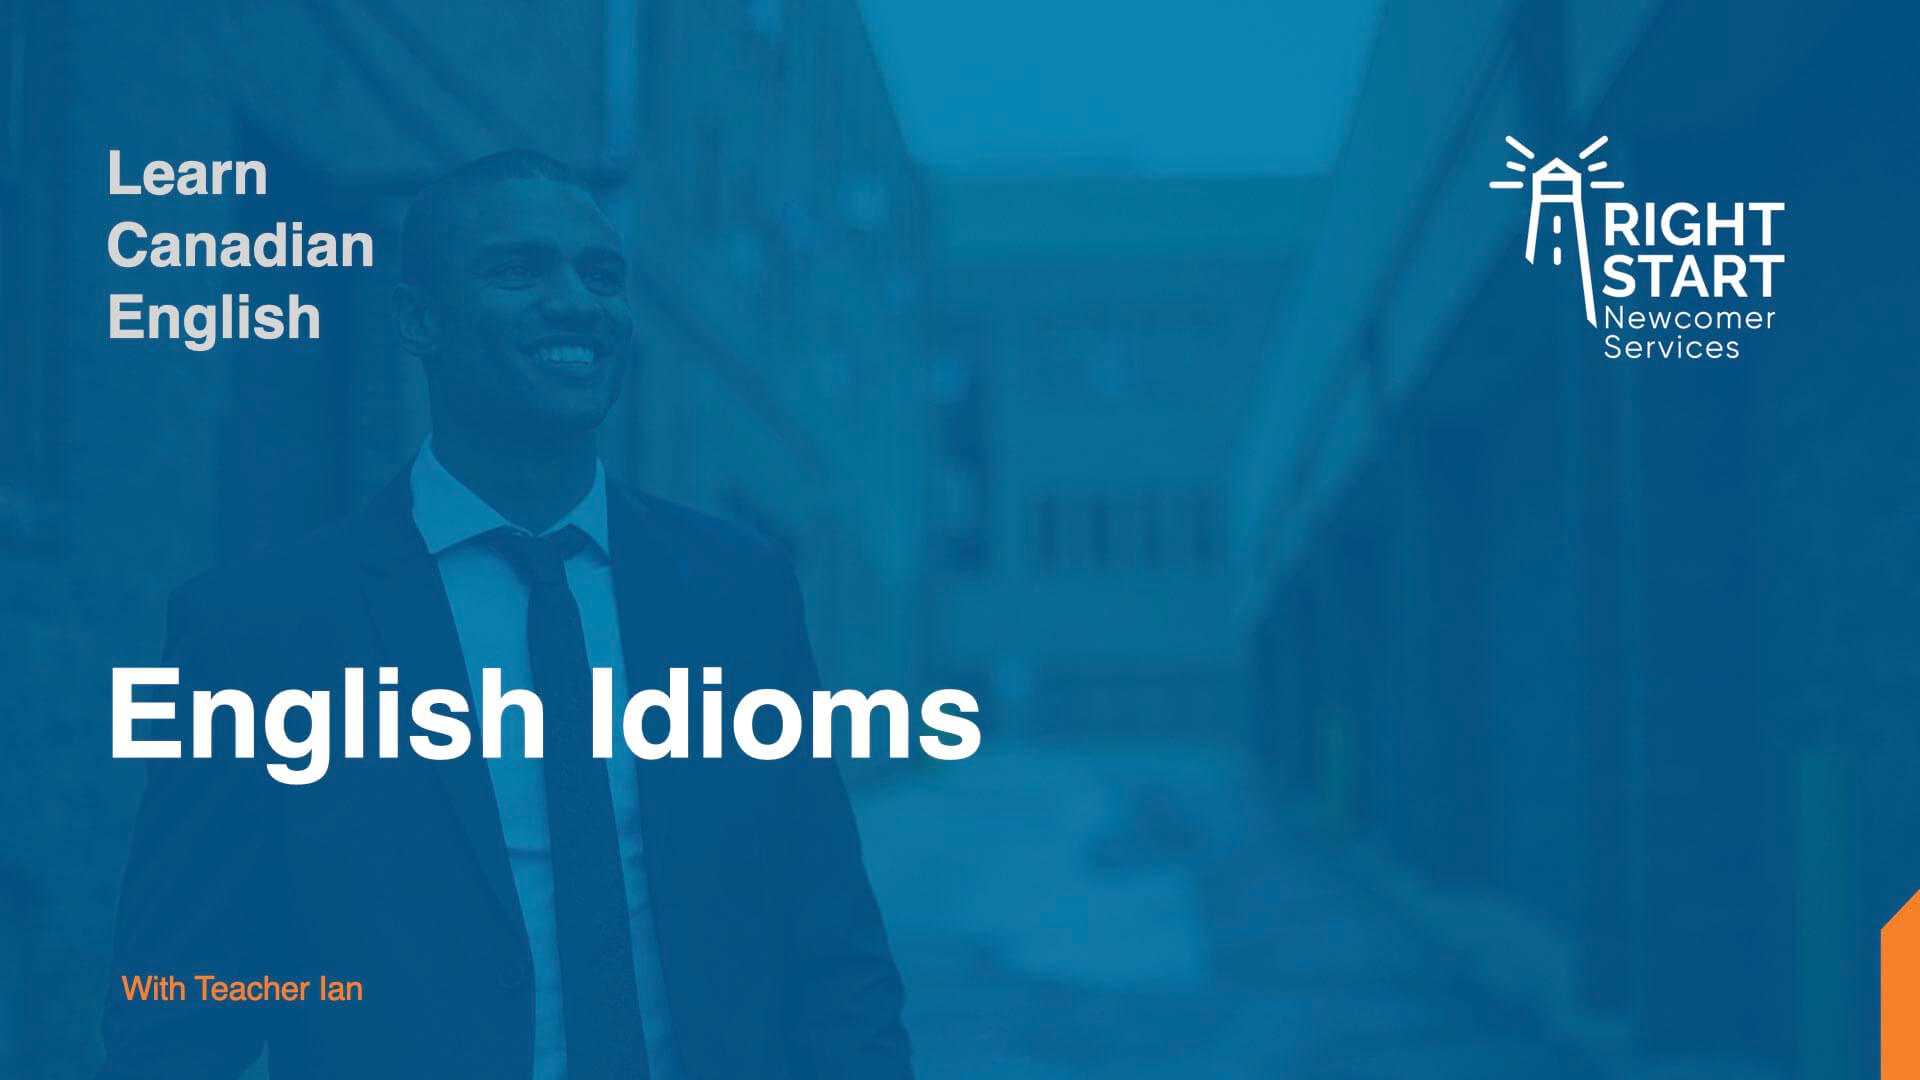 Learn Canadian English - Idioms slides